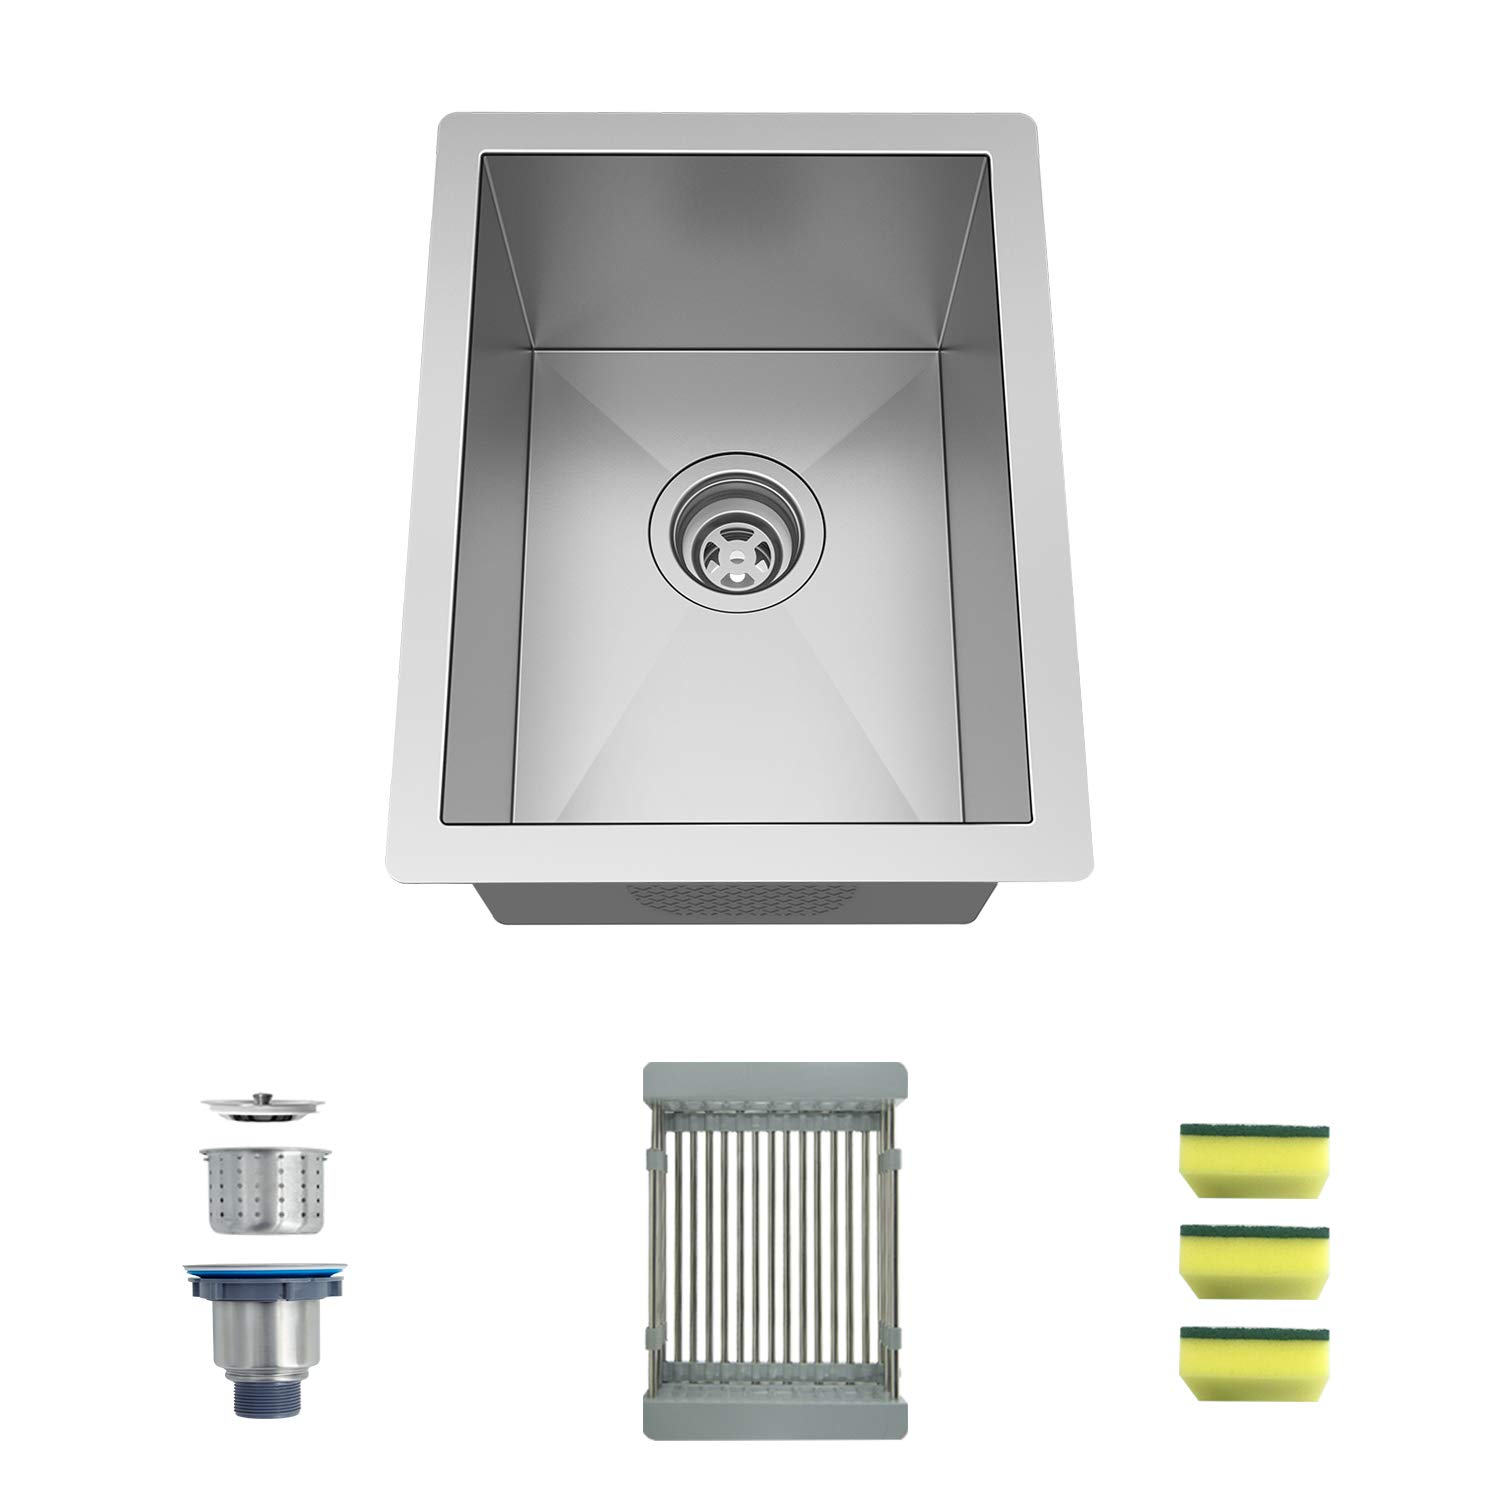 "MENSARJOR 14'' x 18'' Single Bowl Kitchen Sink 16 Gauge Undermount Stainless Steel Square Small Kitchen Sinks, Bar or Prep Sink Drop in (14"" x 18"" x 8.5"")"